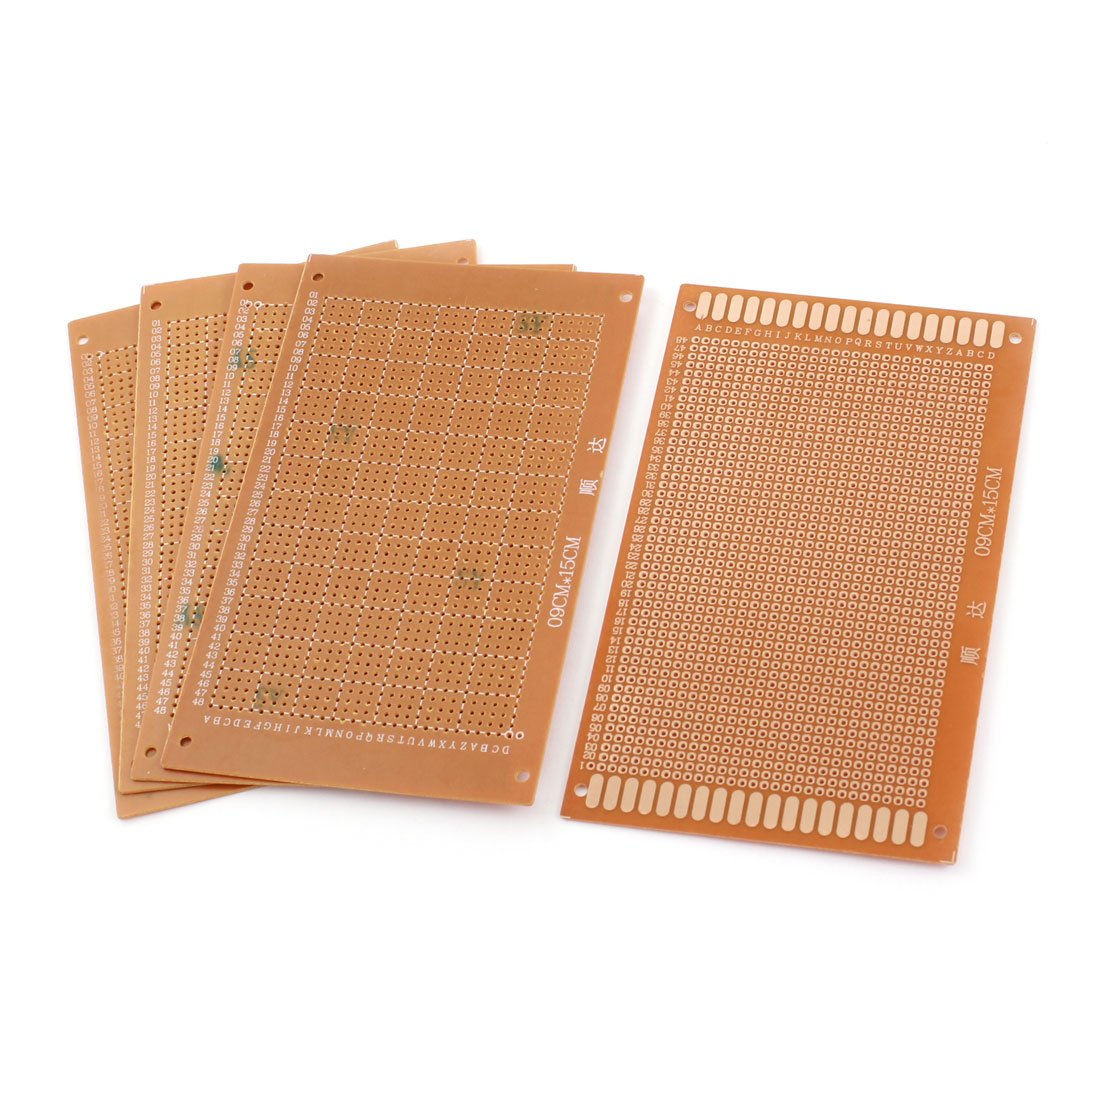 5 Pcs 2.54mm Pitch DIY Brown Single Side Universal PCB Board Prototyping Stripboard Breadboard 9cm x 15cm